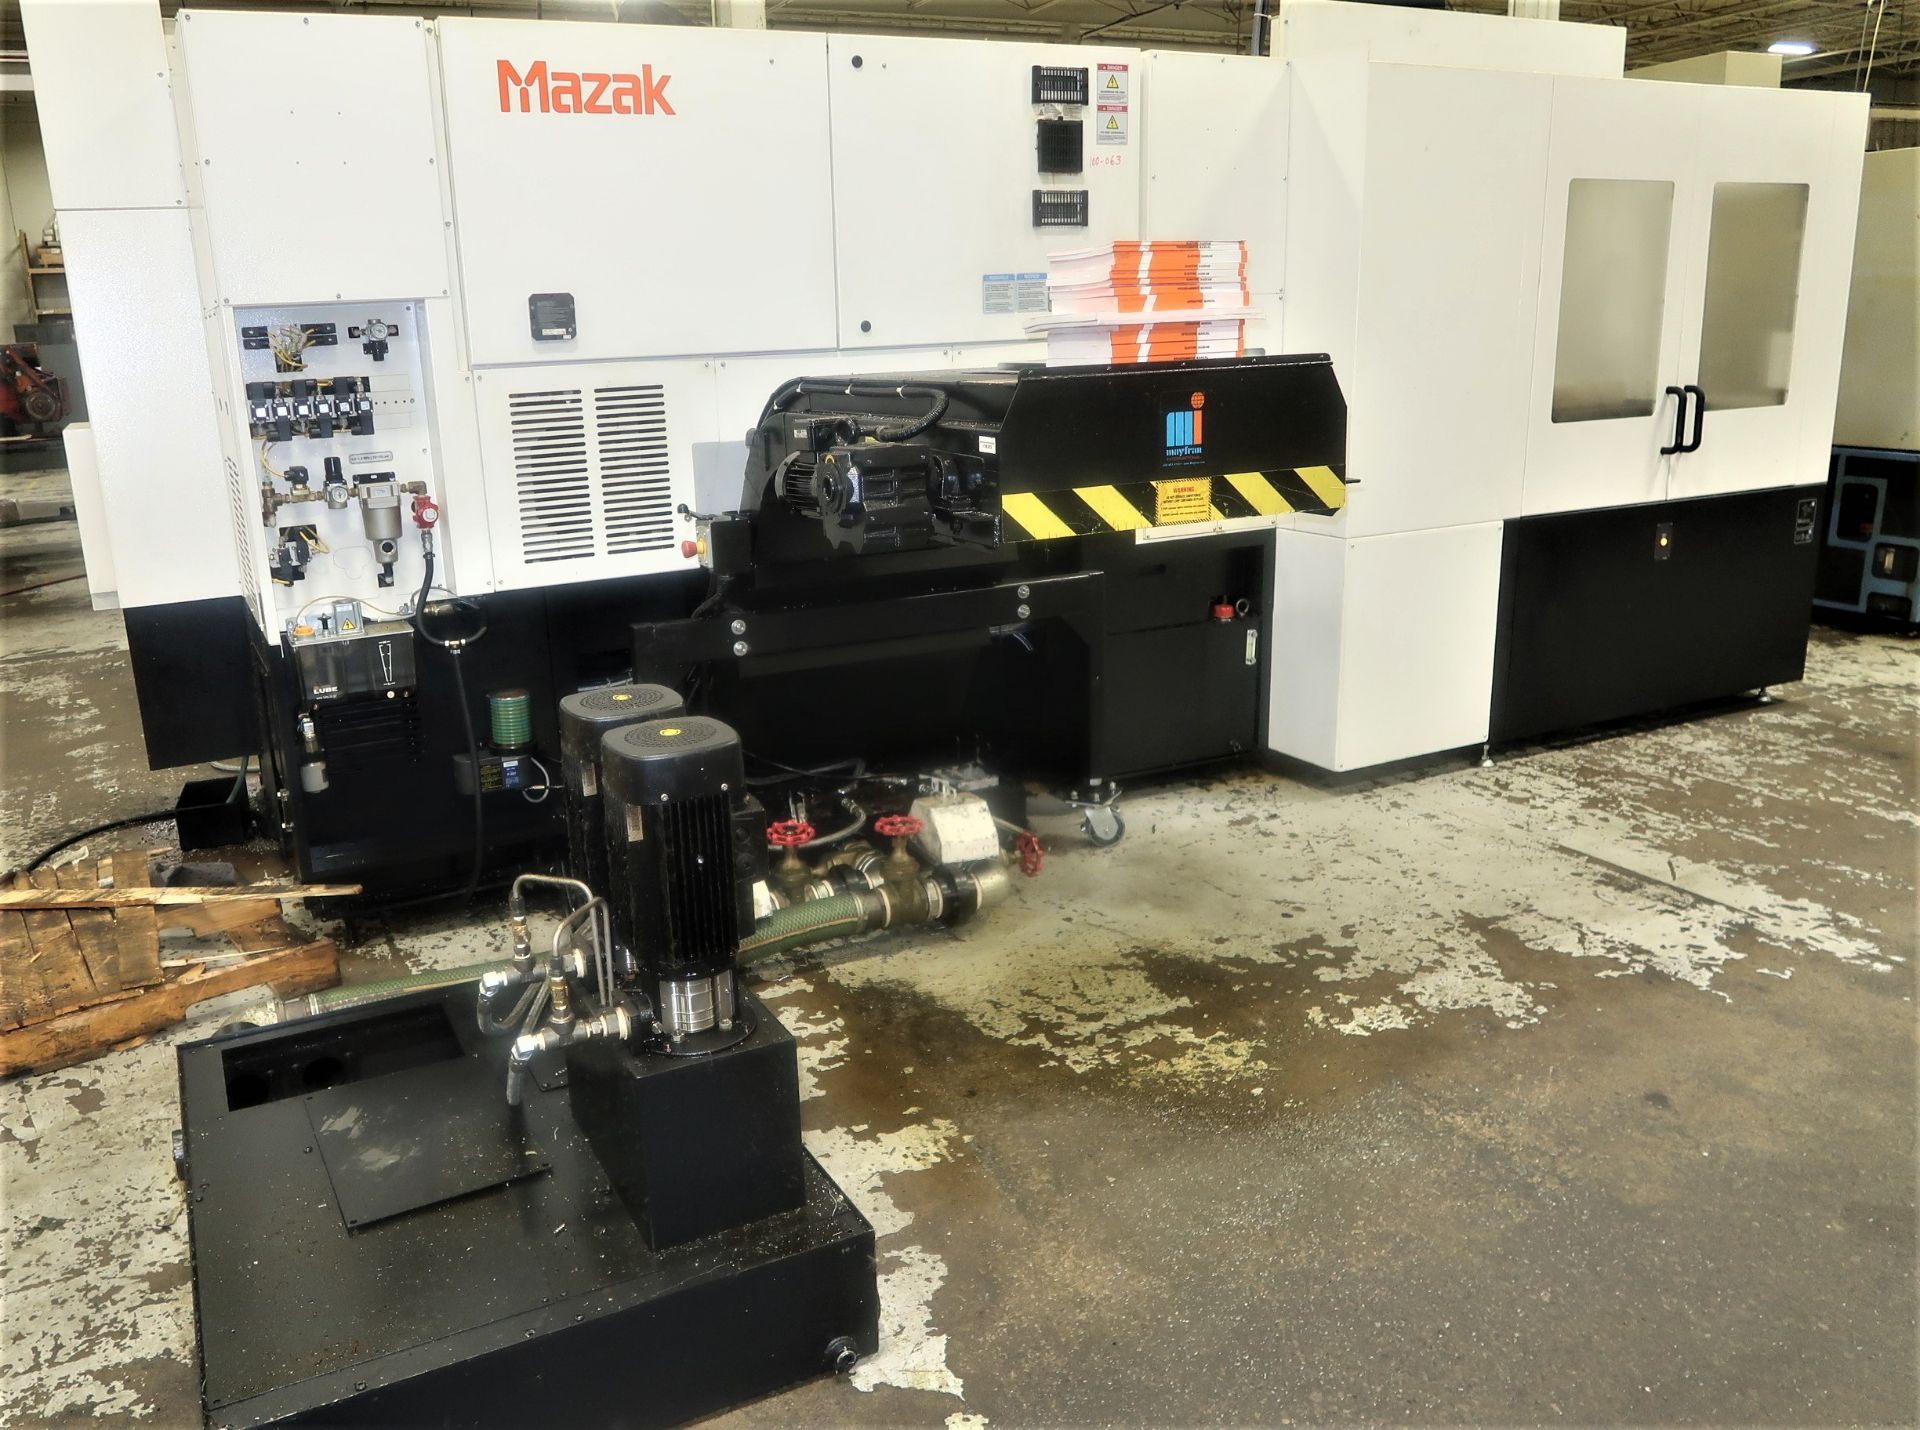 Lot 1 - Mazak Dual turn 200 Twin Spindle CNC Turning Center Lathe, S/N 285120, New 2018